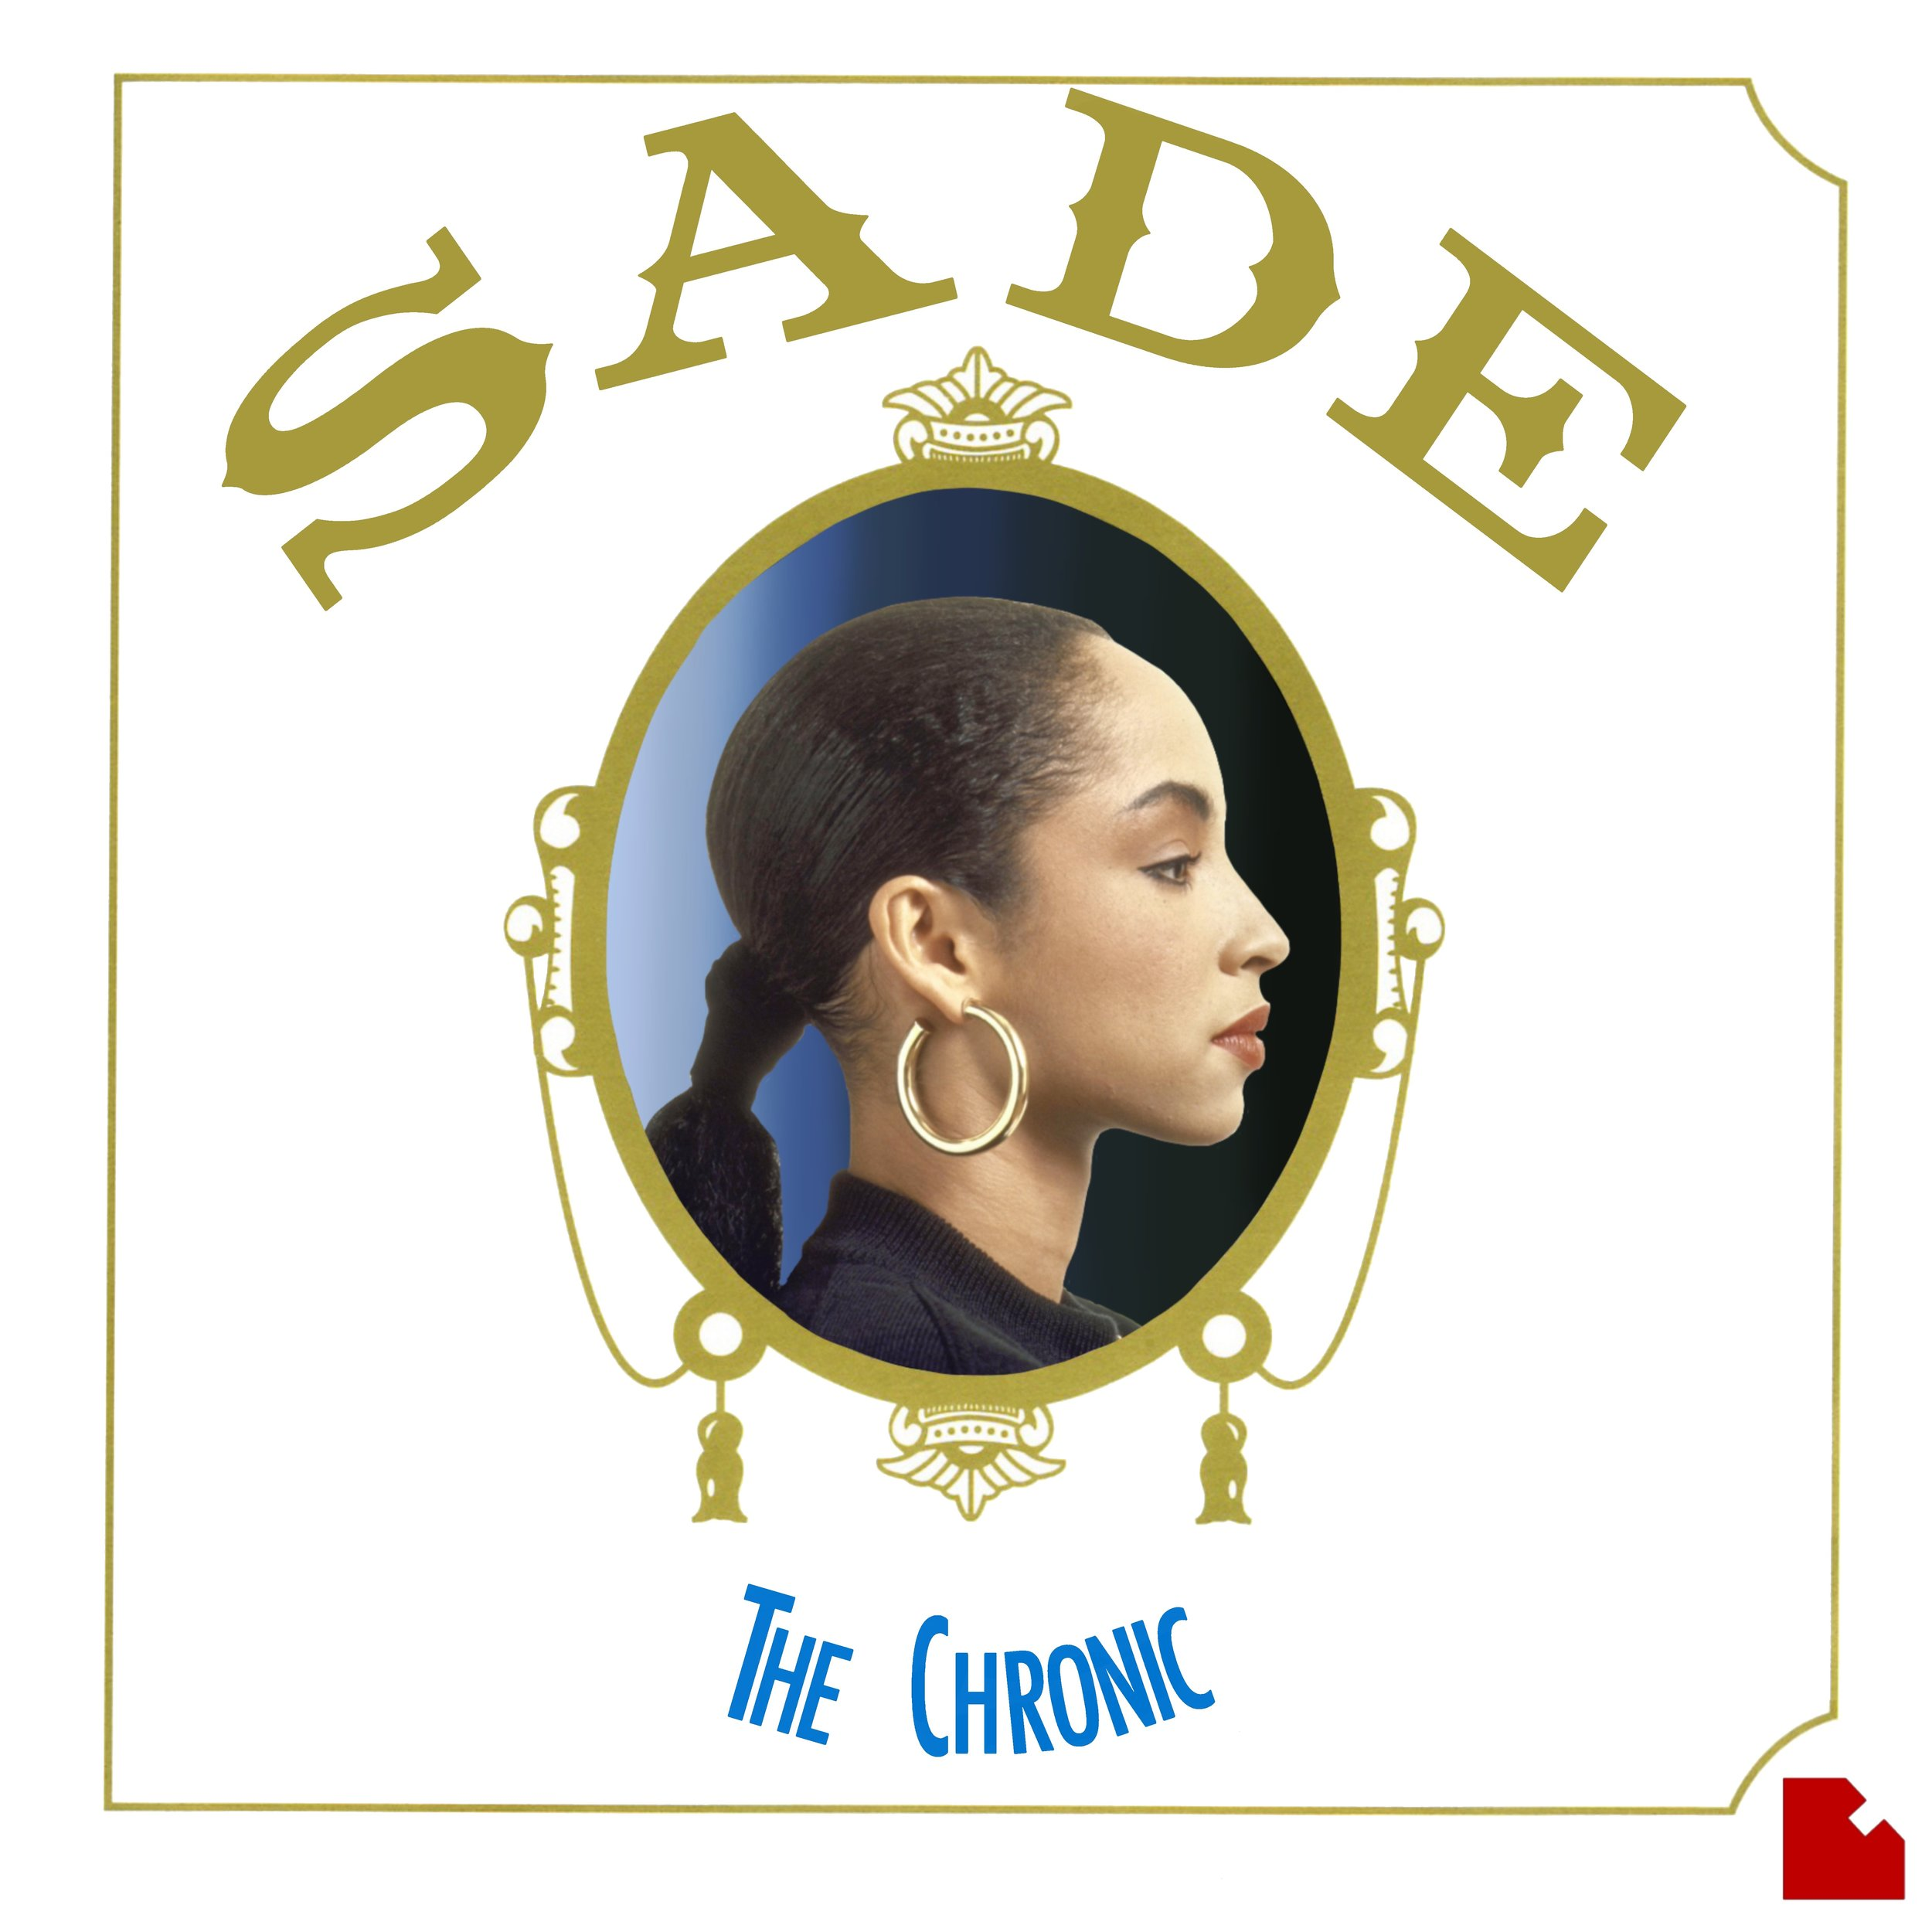 S A D E ,The Chronic - This collection is currently sold out.